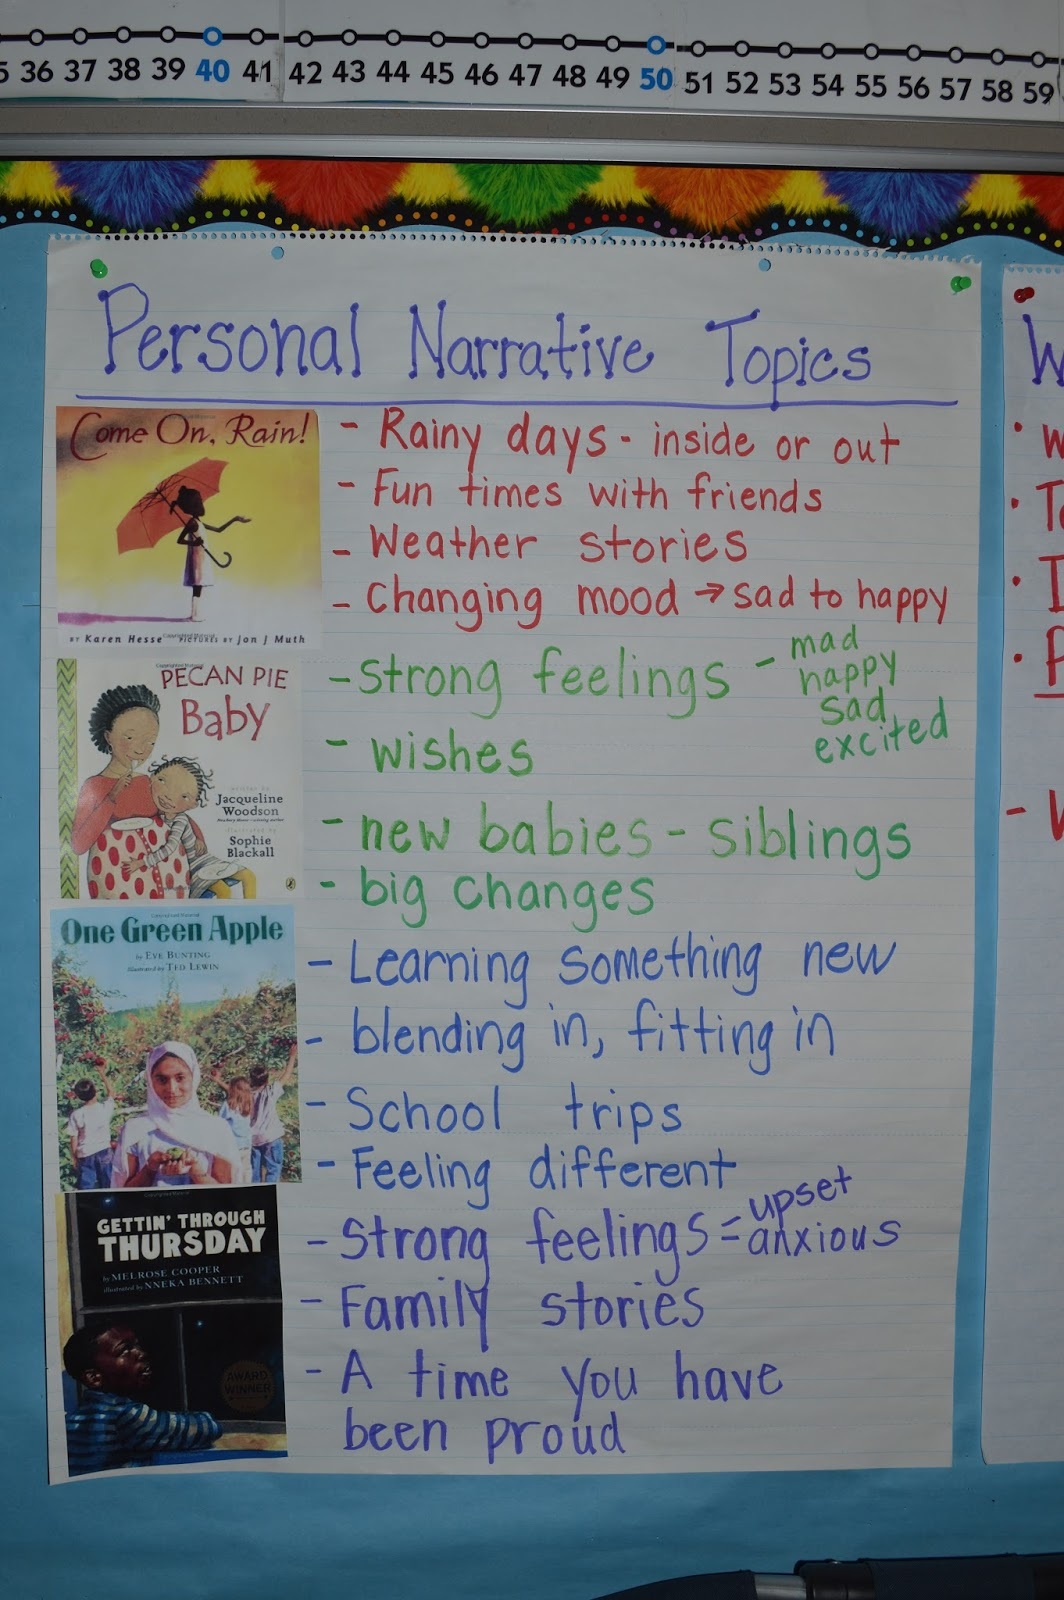 Writing A Story 3rd Person Narrative Ideas